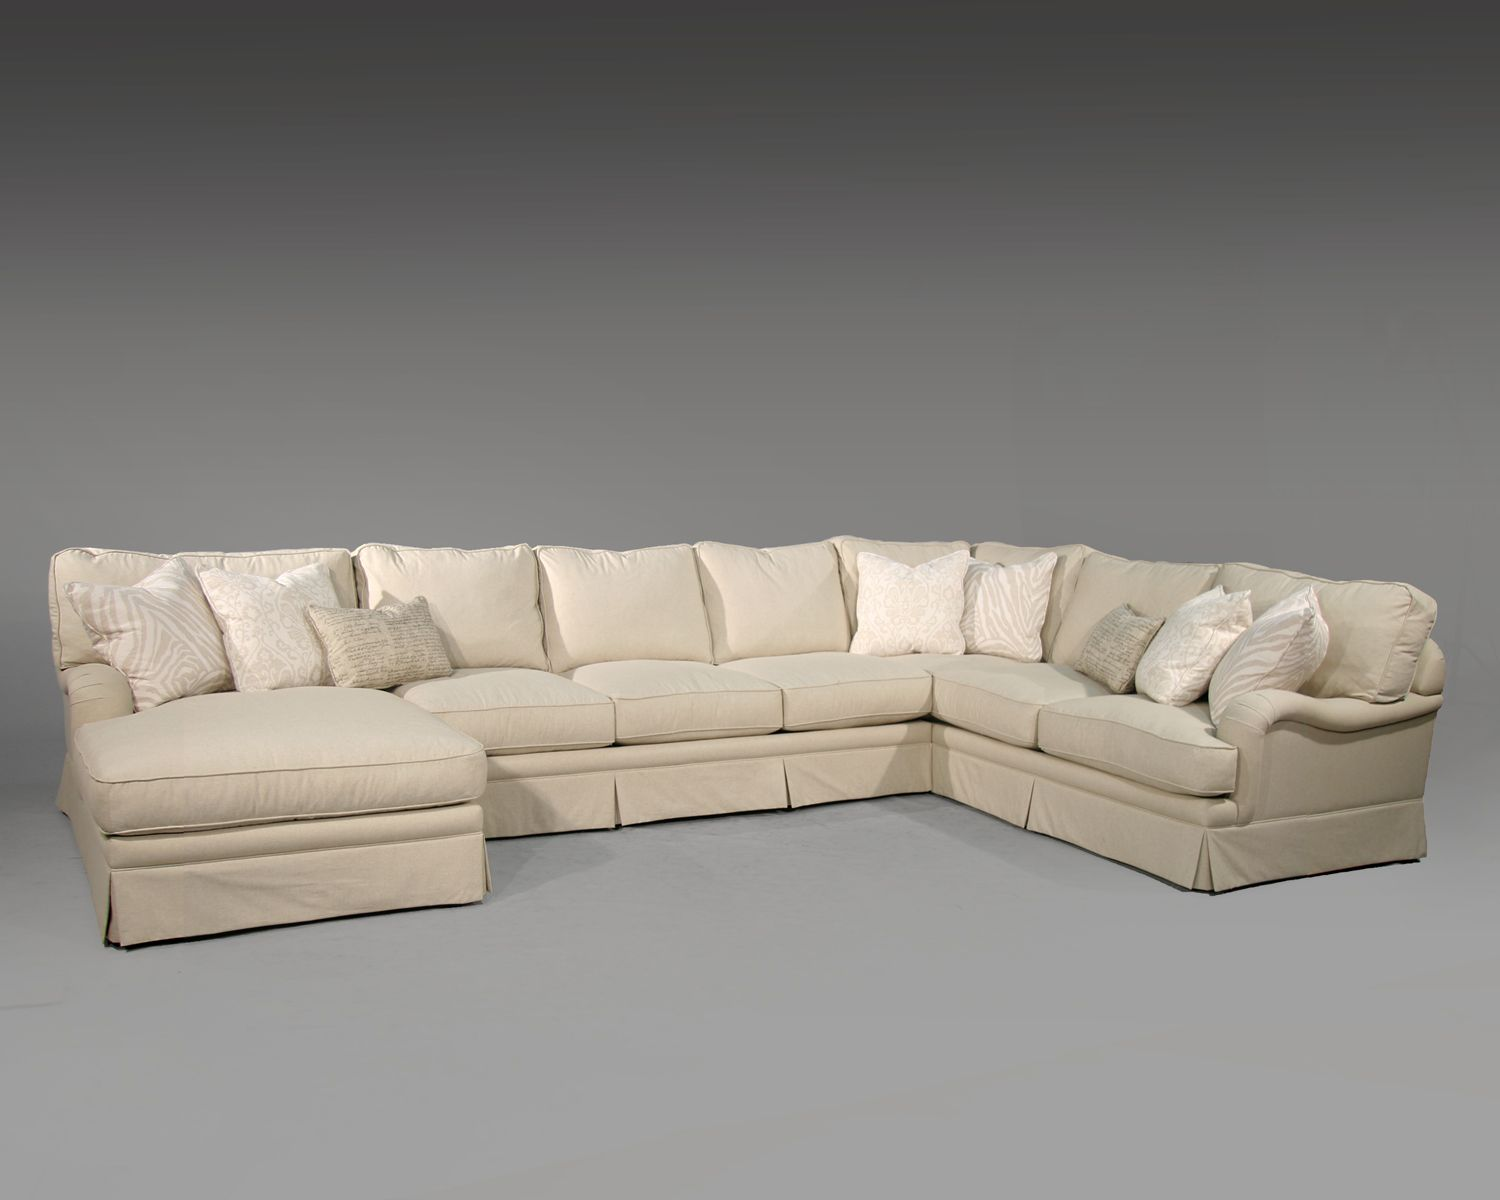 fairmont designs east providence collection sectional the house rh pinterest com